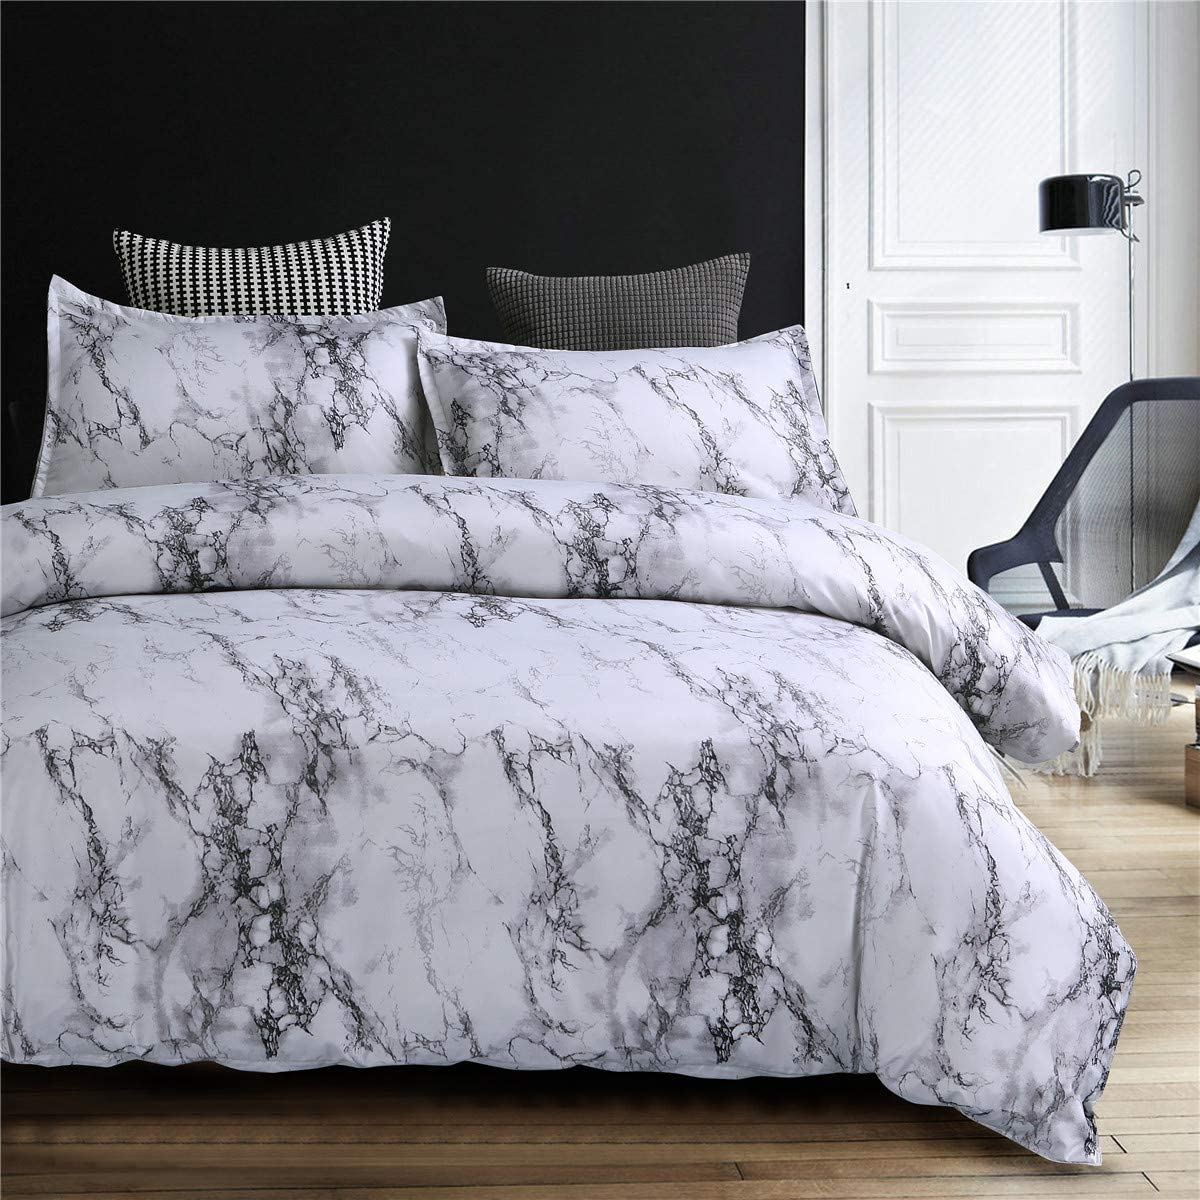 NTBED Marble Duvet Cover Sets Queen with 2 Matching Pillow Covers Lightweight Microfiber Quilt Cover Printed Bedding Sets